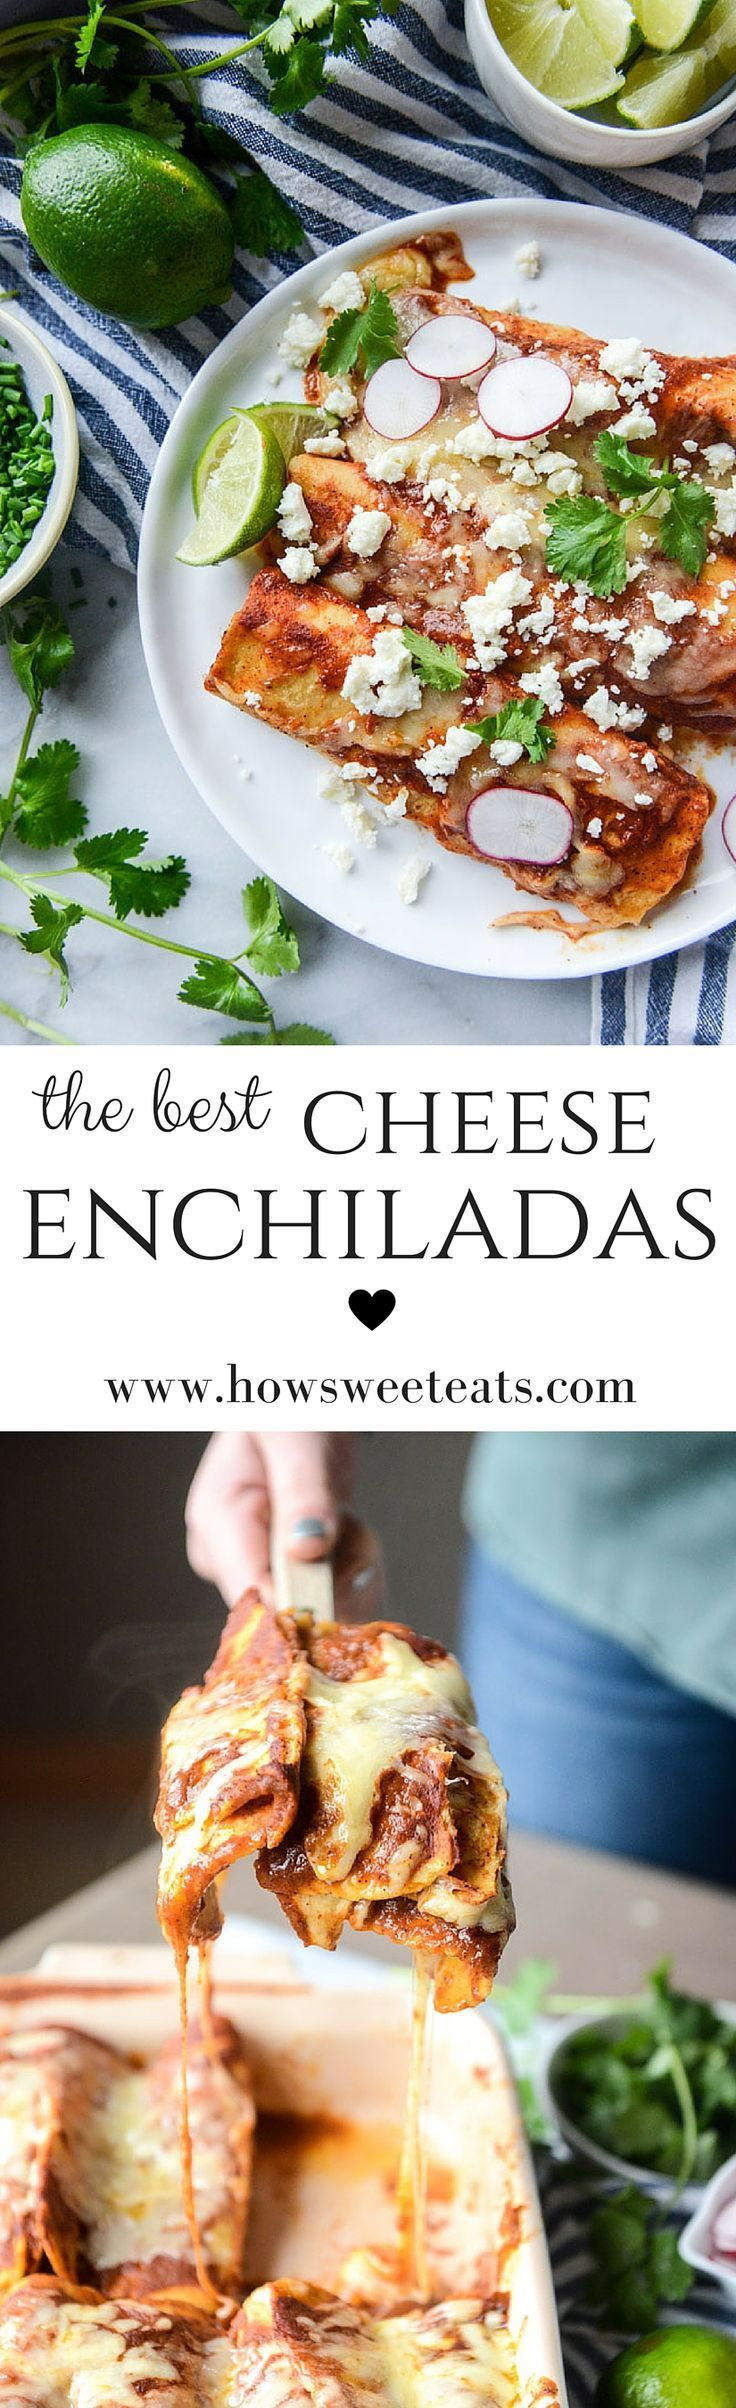 the best cheese enchiladas by /how/ sweet eats I http://howsweeteats.com